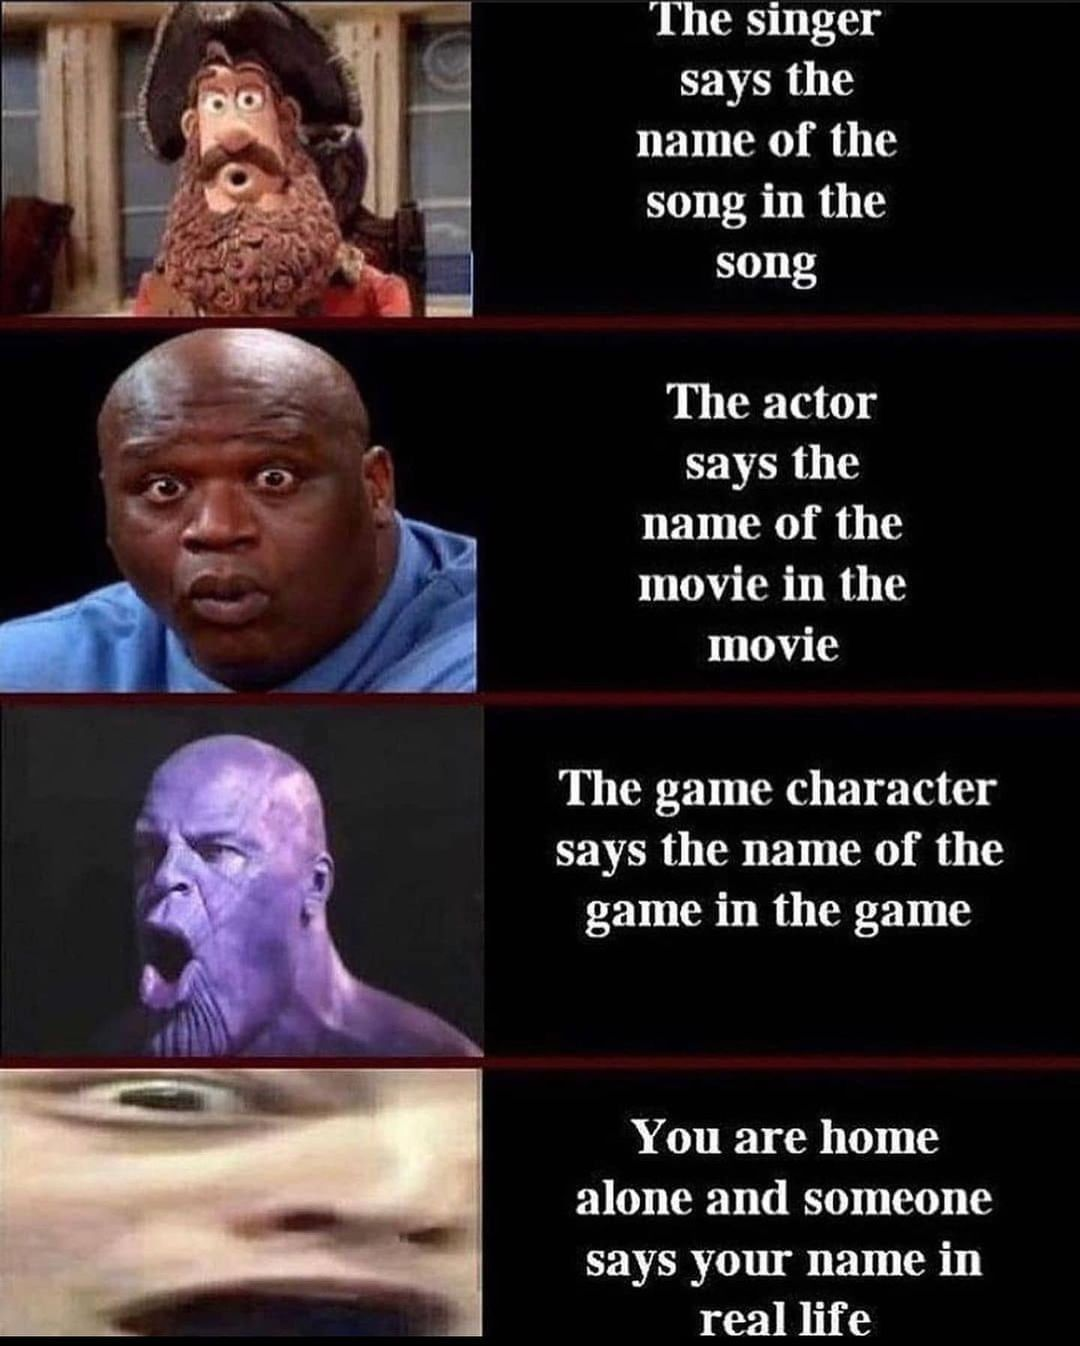 The singer says the name of the song in the song.  The actor says the name of the movie in the movie.  The game character says the name of the game in the game.  You are home alone and someone says your name in real life.